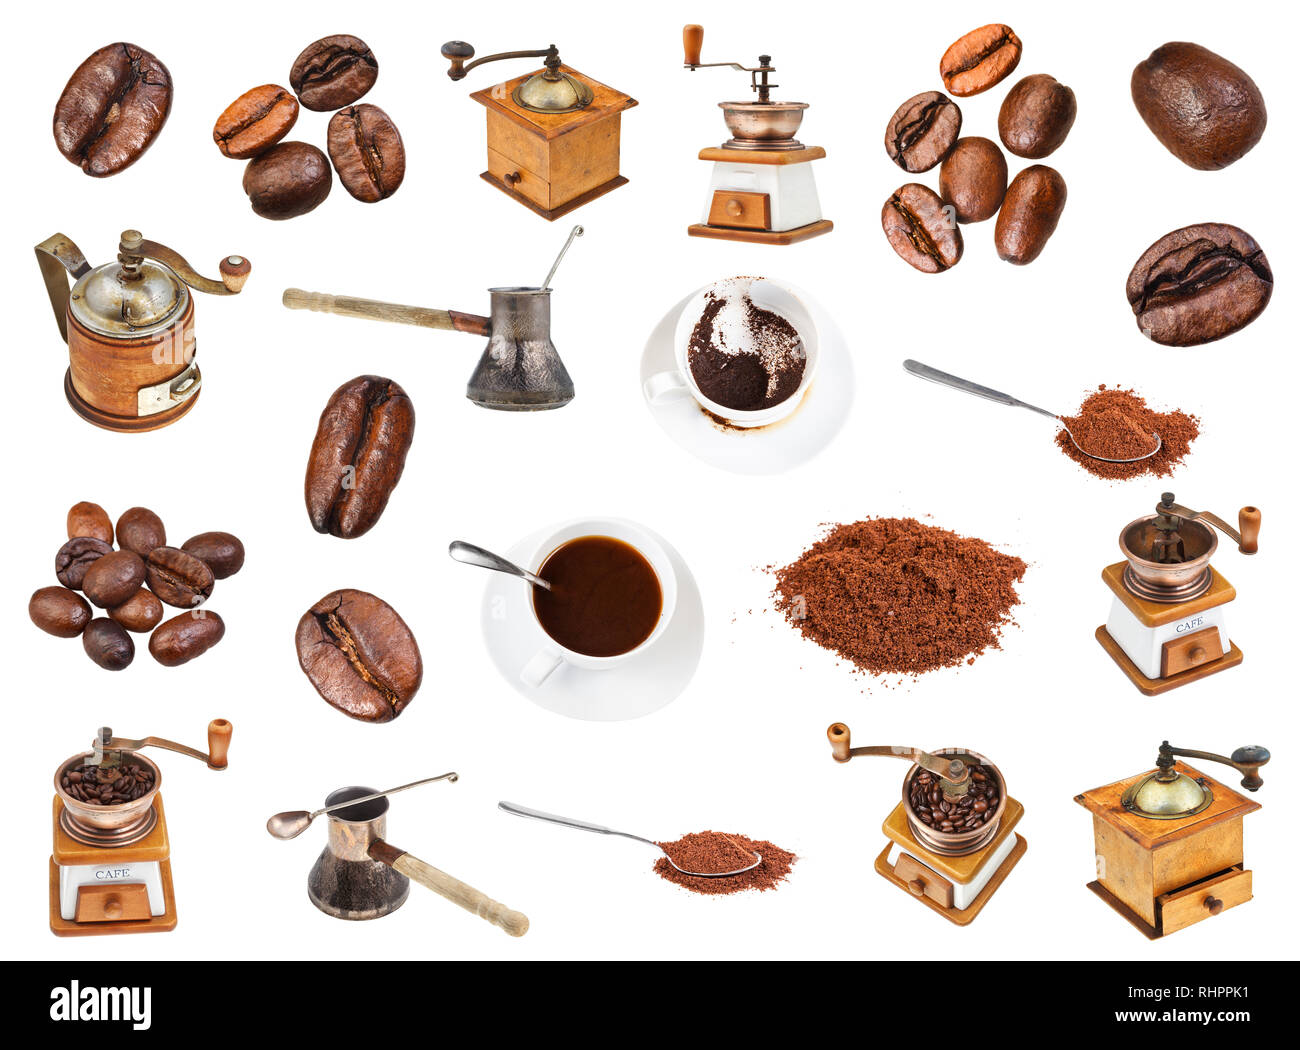 set from coffee, beans, ground powder, coffee mills, drinks in cups isolated on white background - Stock Image